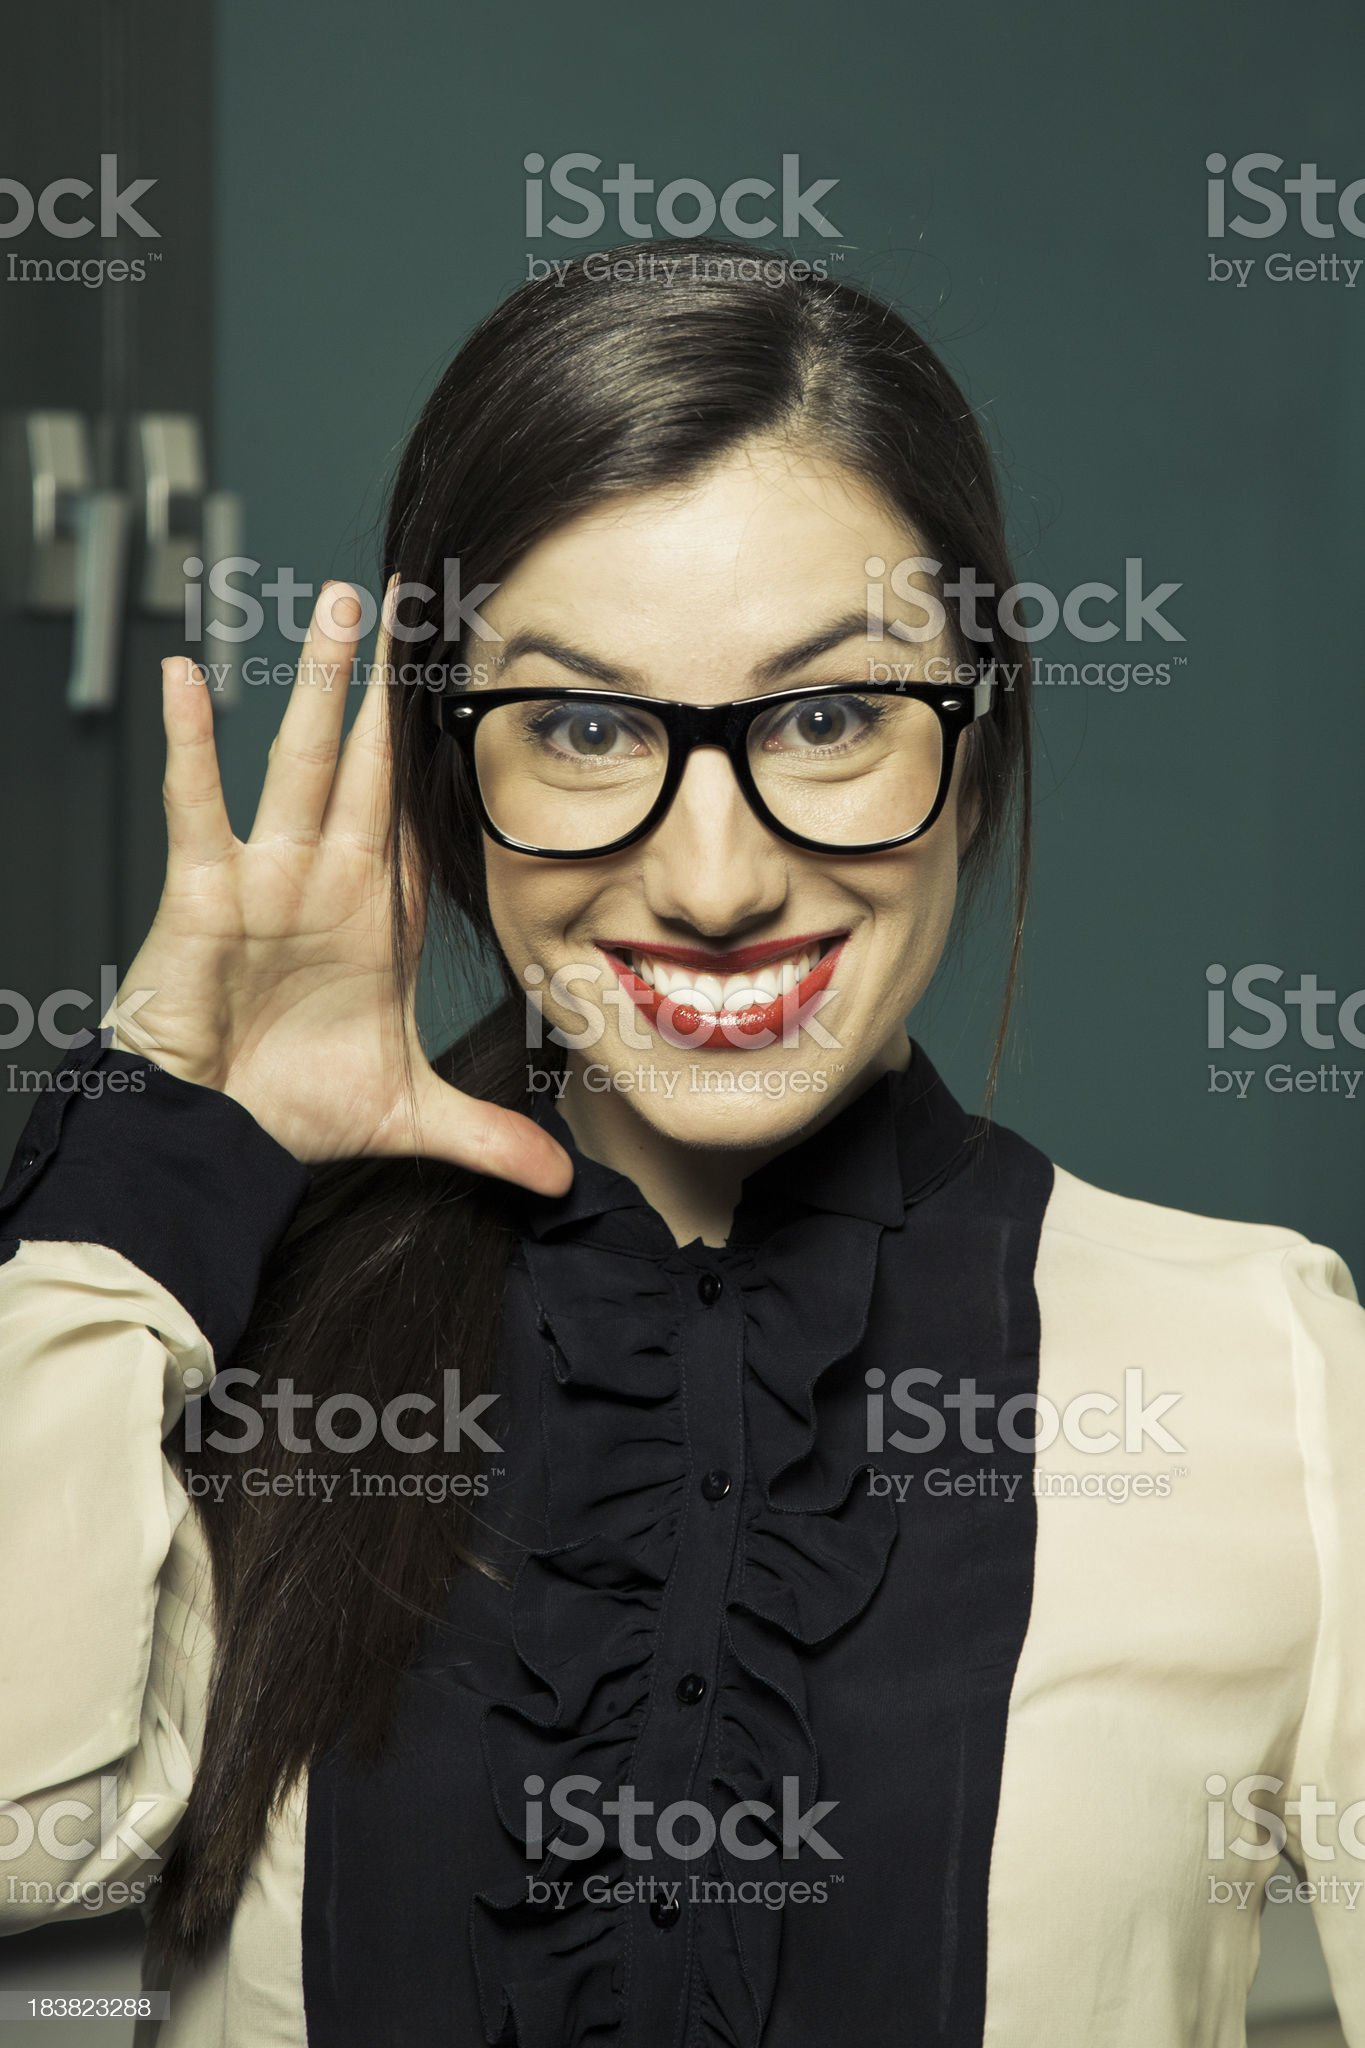 Secretary with funny facial expression royalty-free stock photo